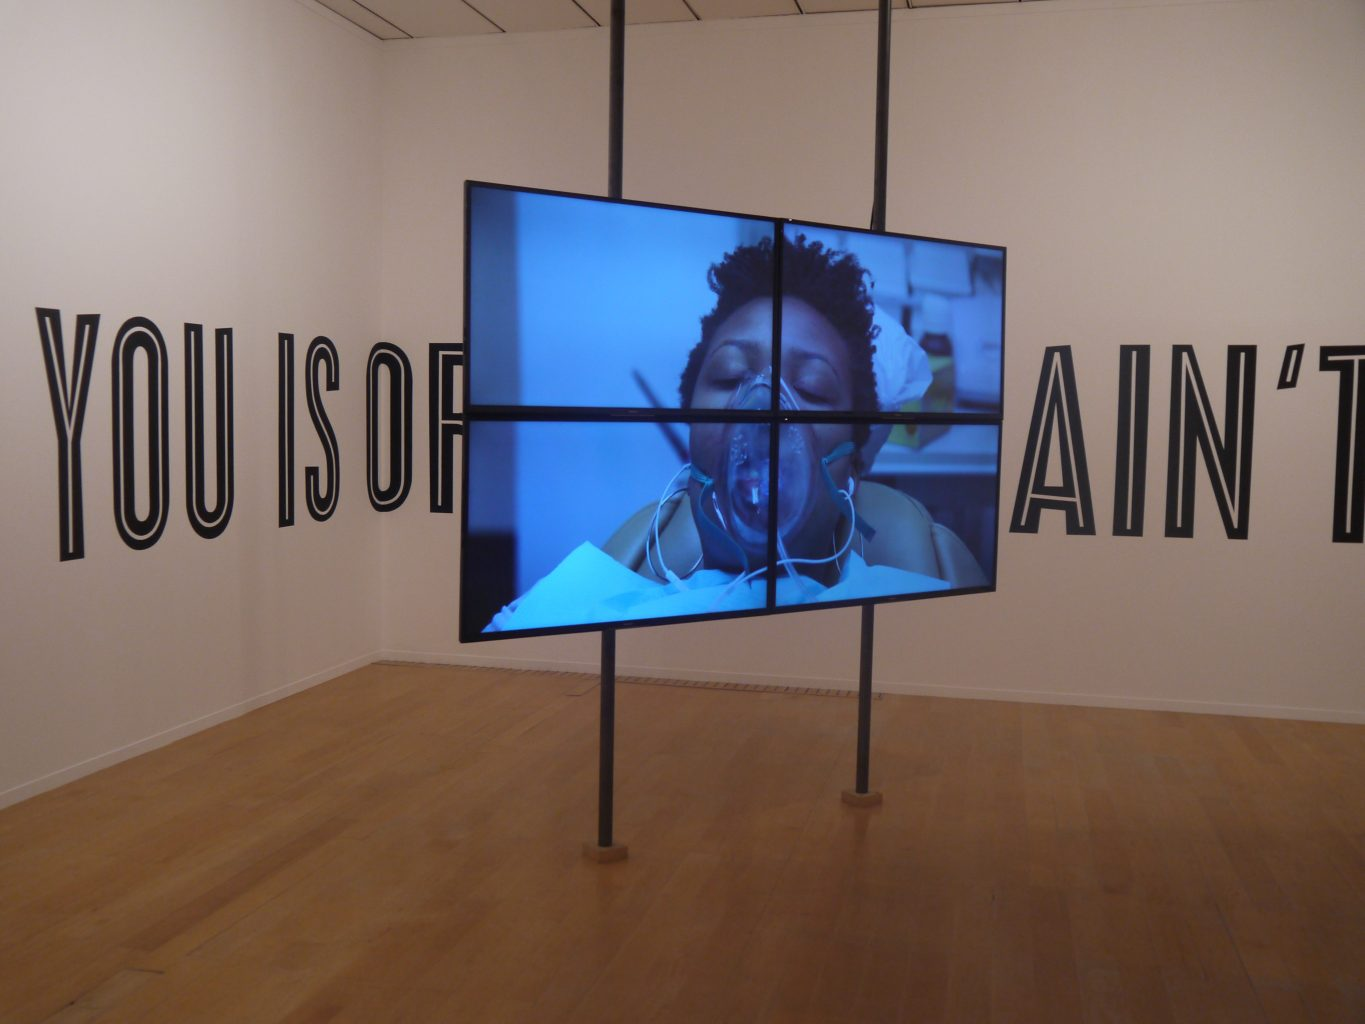 Vue de l'exposition Los Angeles, une fiction, au MAC Lyon. Installation video de Martine Syms, Laughing-Gas, 2016